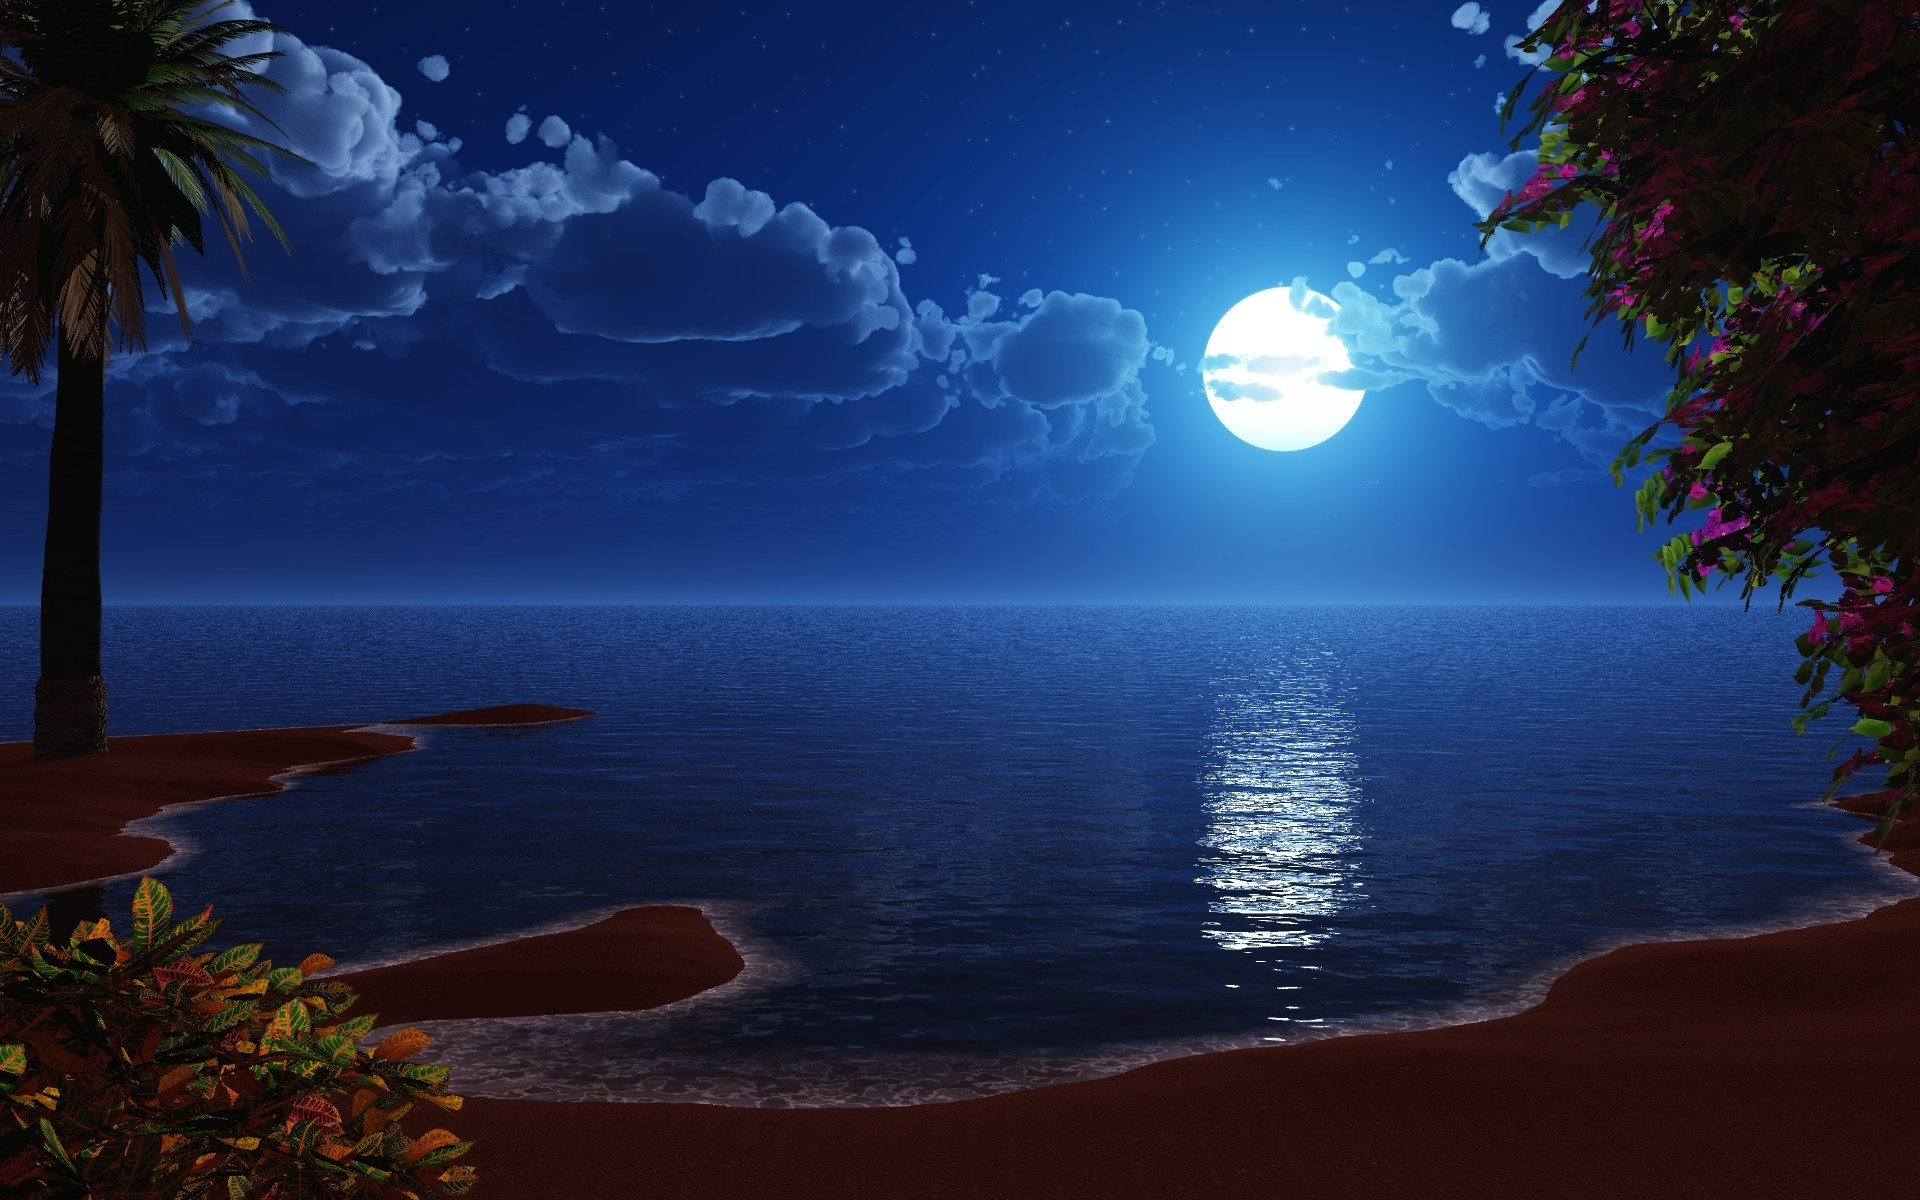 Beach At Night With Moon Wallpaper Images amp Pictures   Becuo 1920x1200